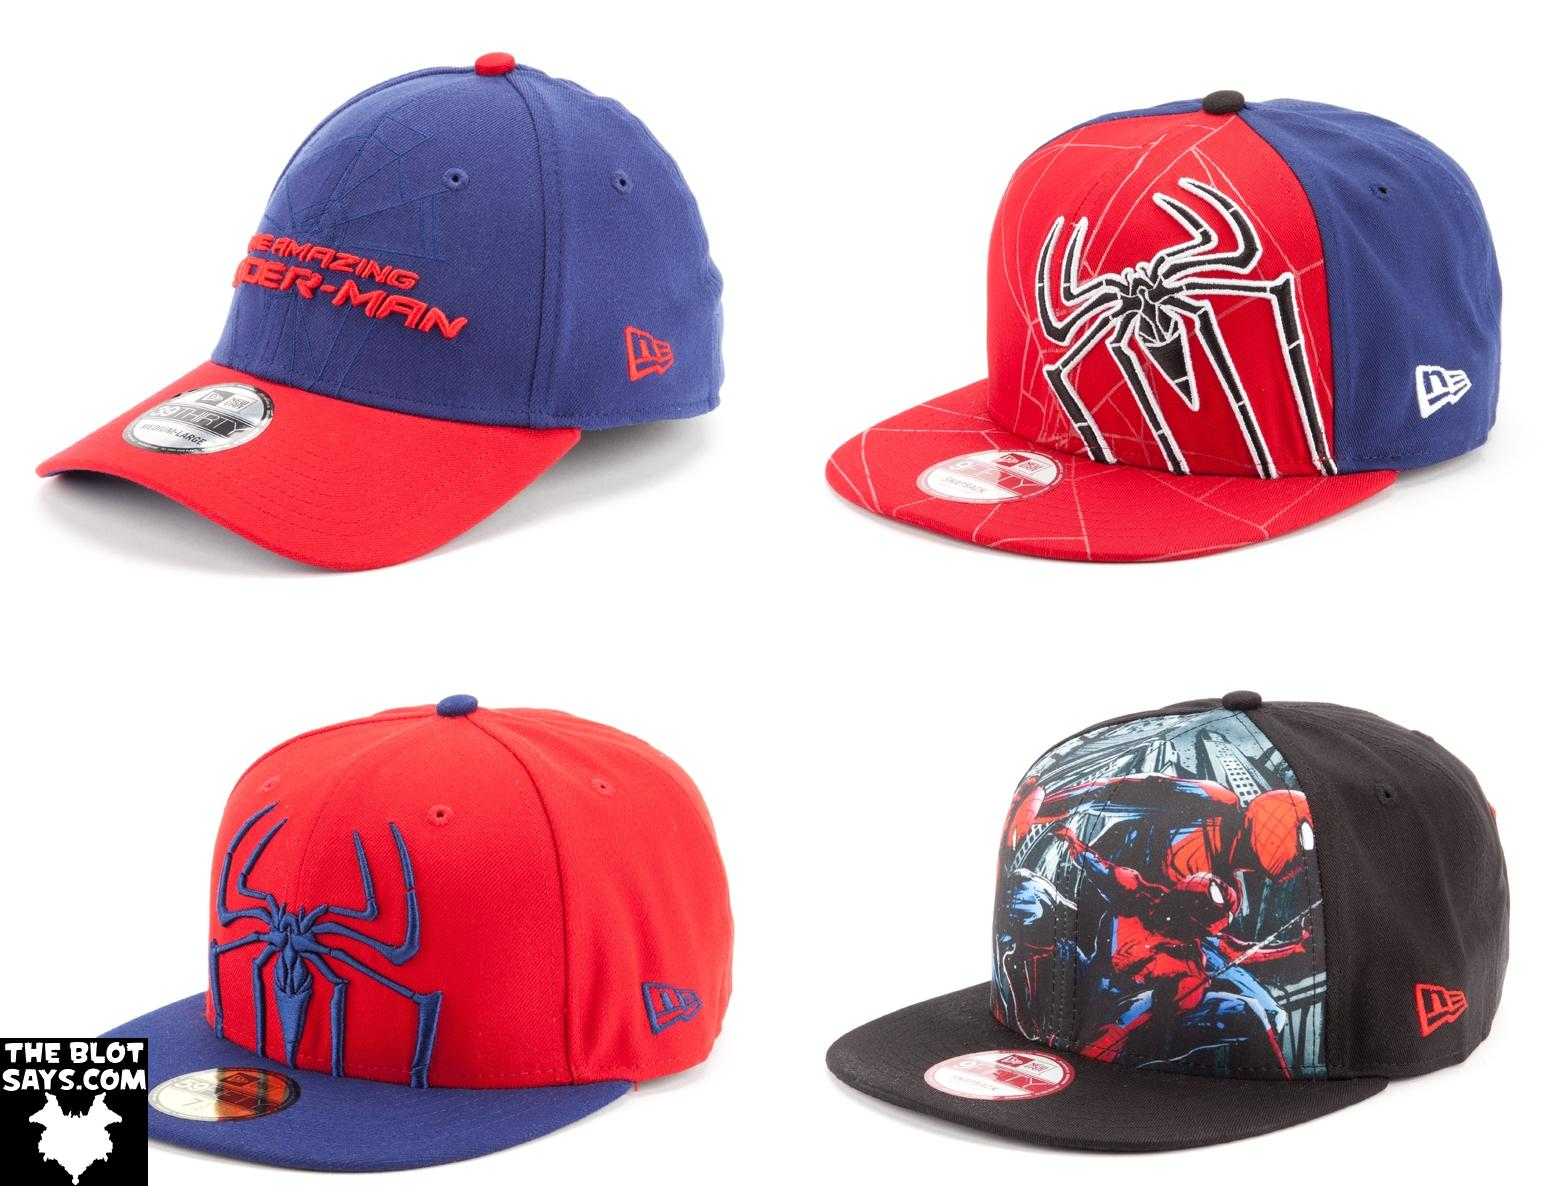 7fe3186a440 The Blot Says...  The Amazing Spider-Man New Era Hat Collection